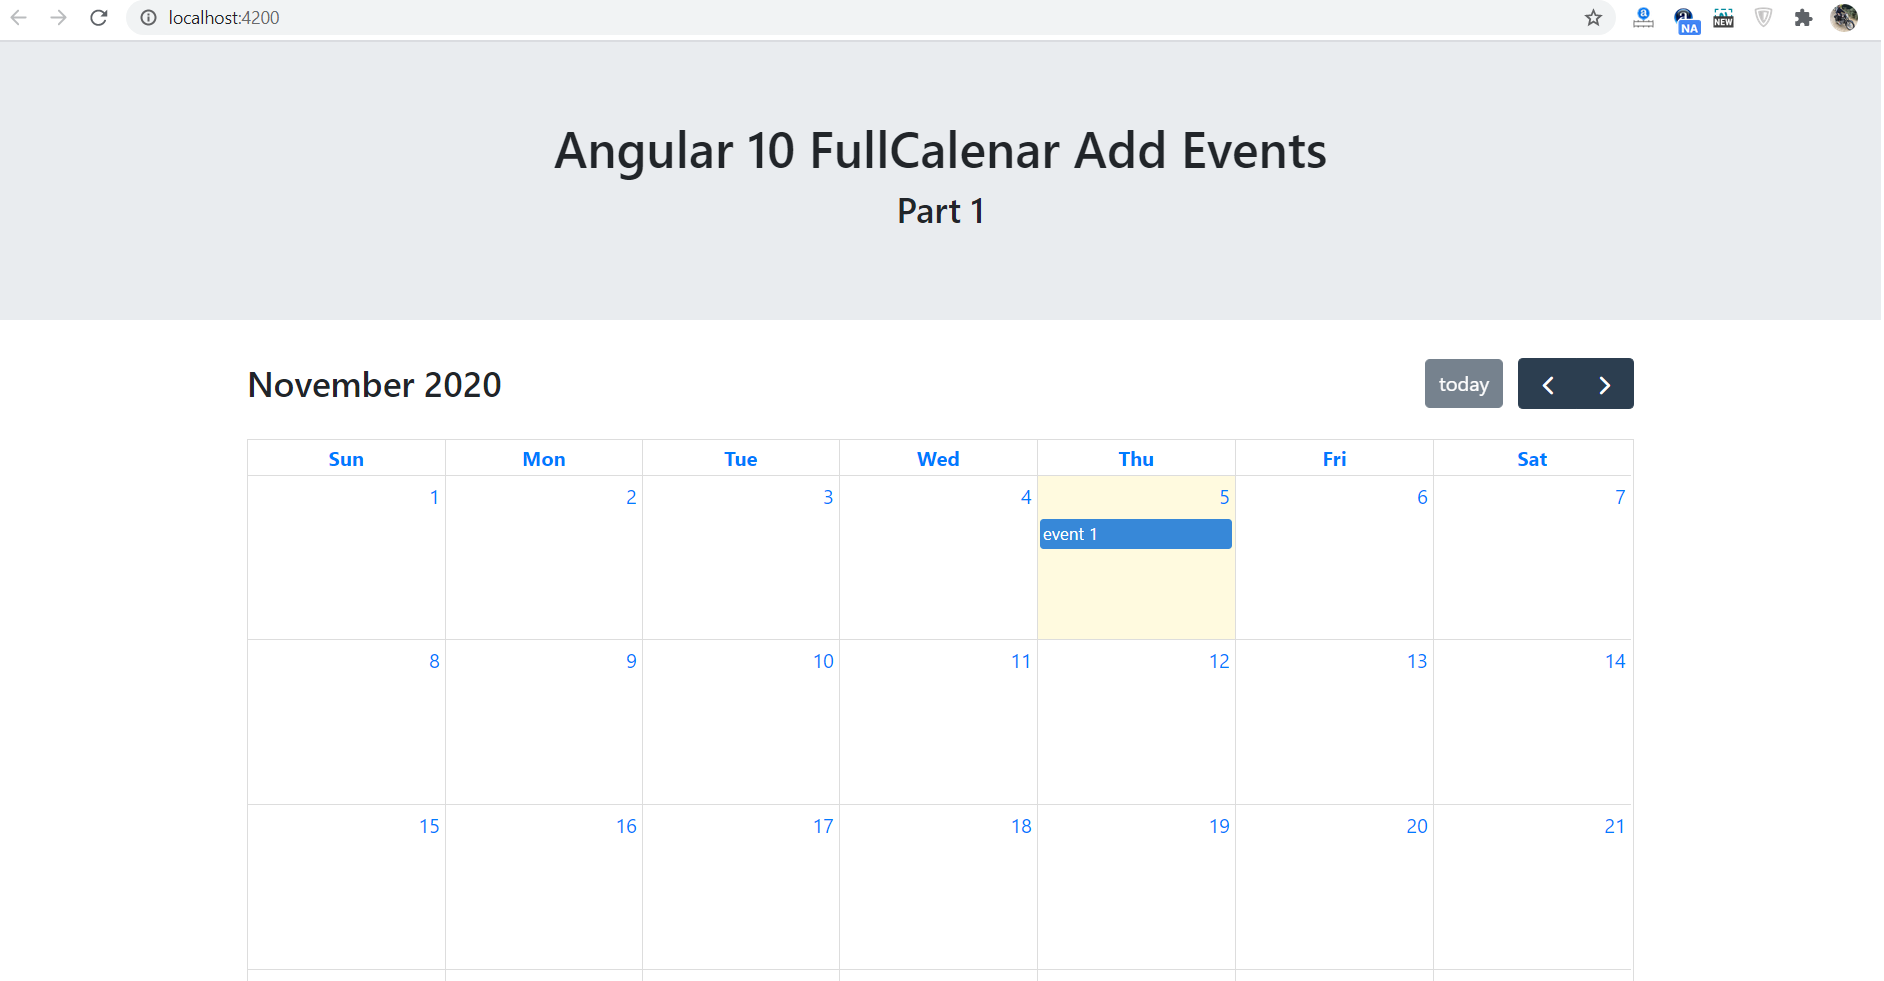 Angular 10 FullCalendar Add Event Demo Part 1 with Source Code